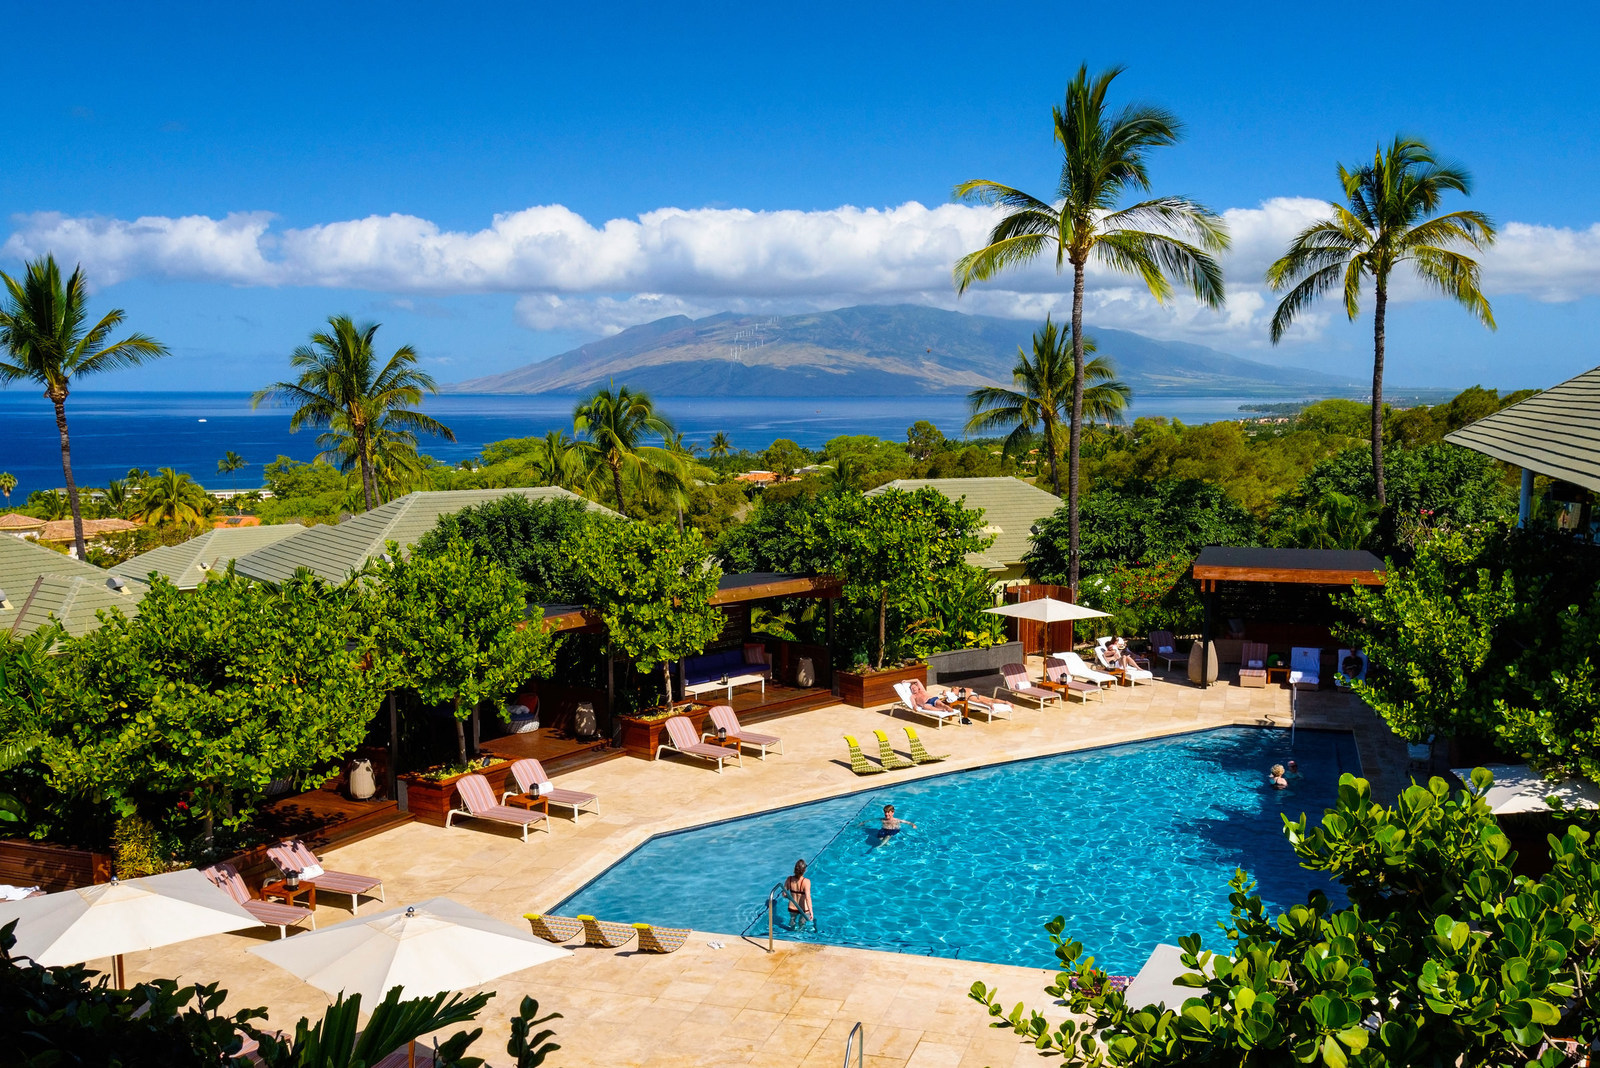 Maui Now Hotel Wailea Voted No 1 Hotel In Hawaii